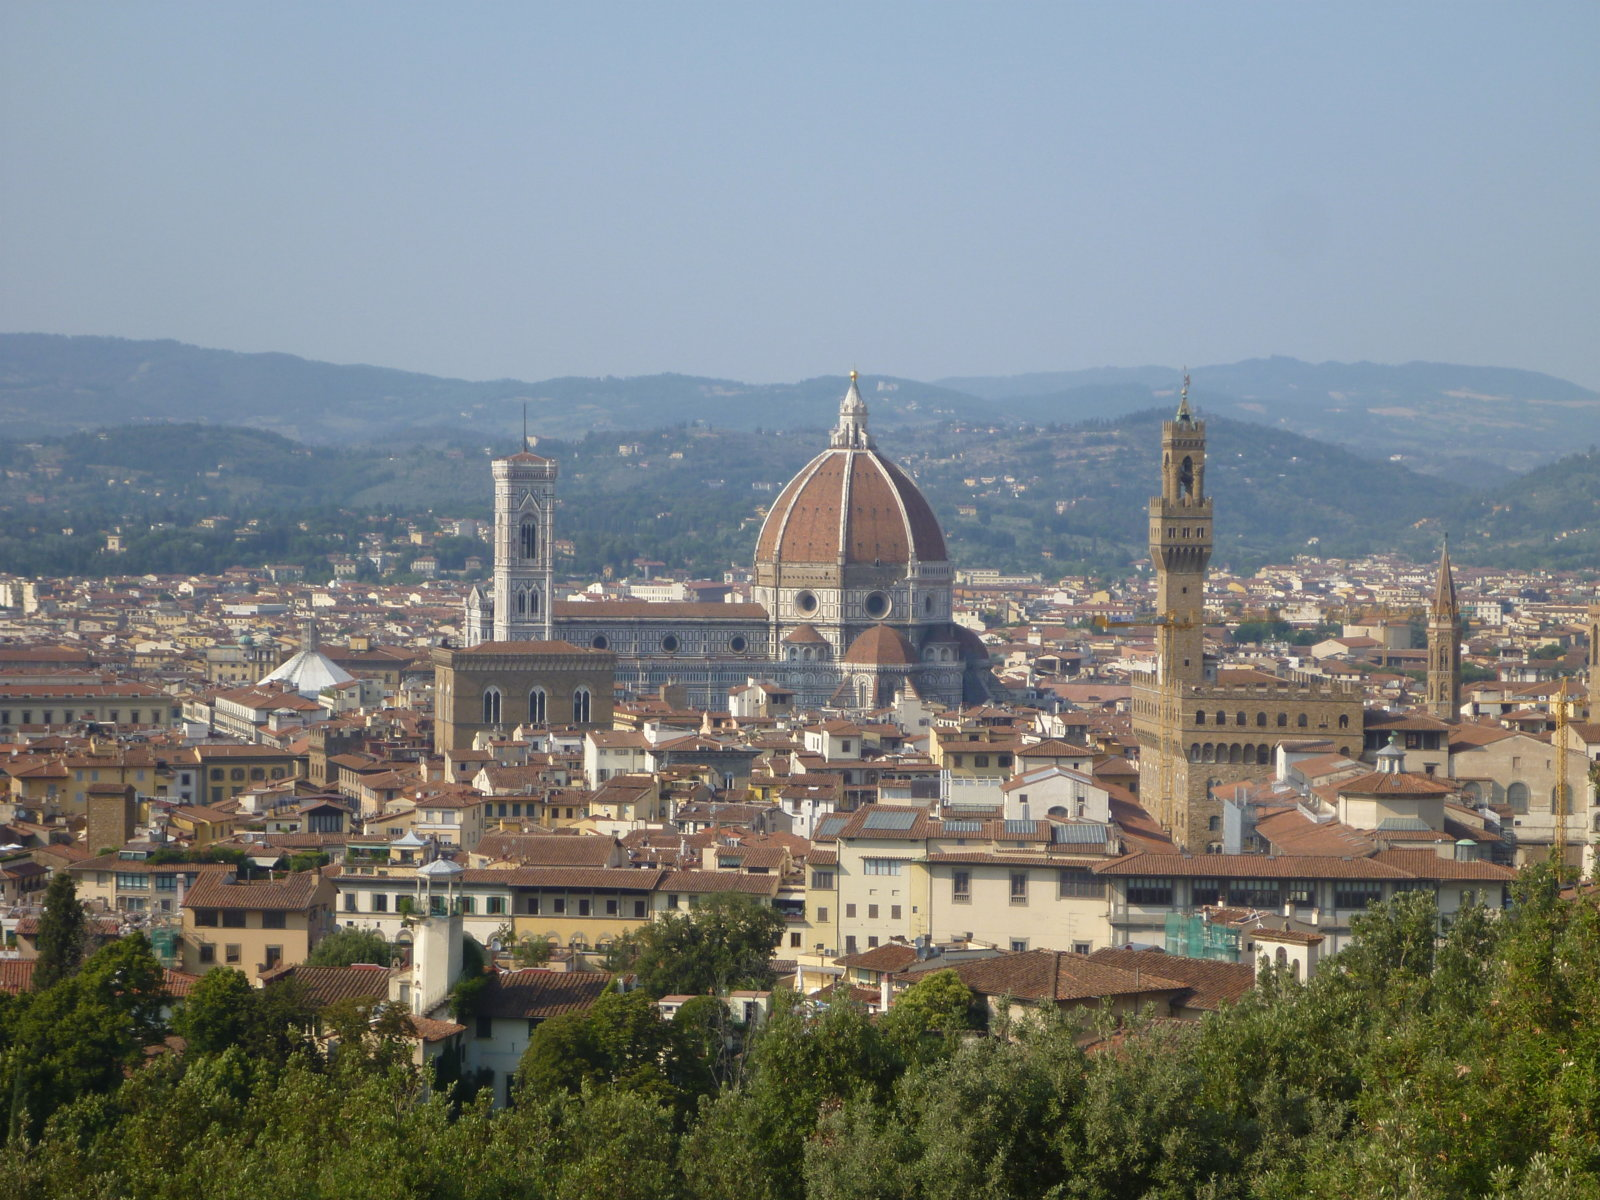 Il Duomo seen from Ft Belvedere